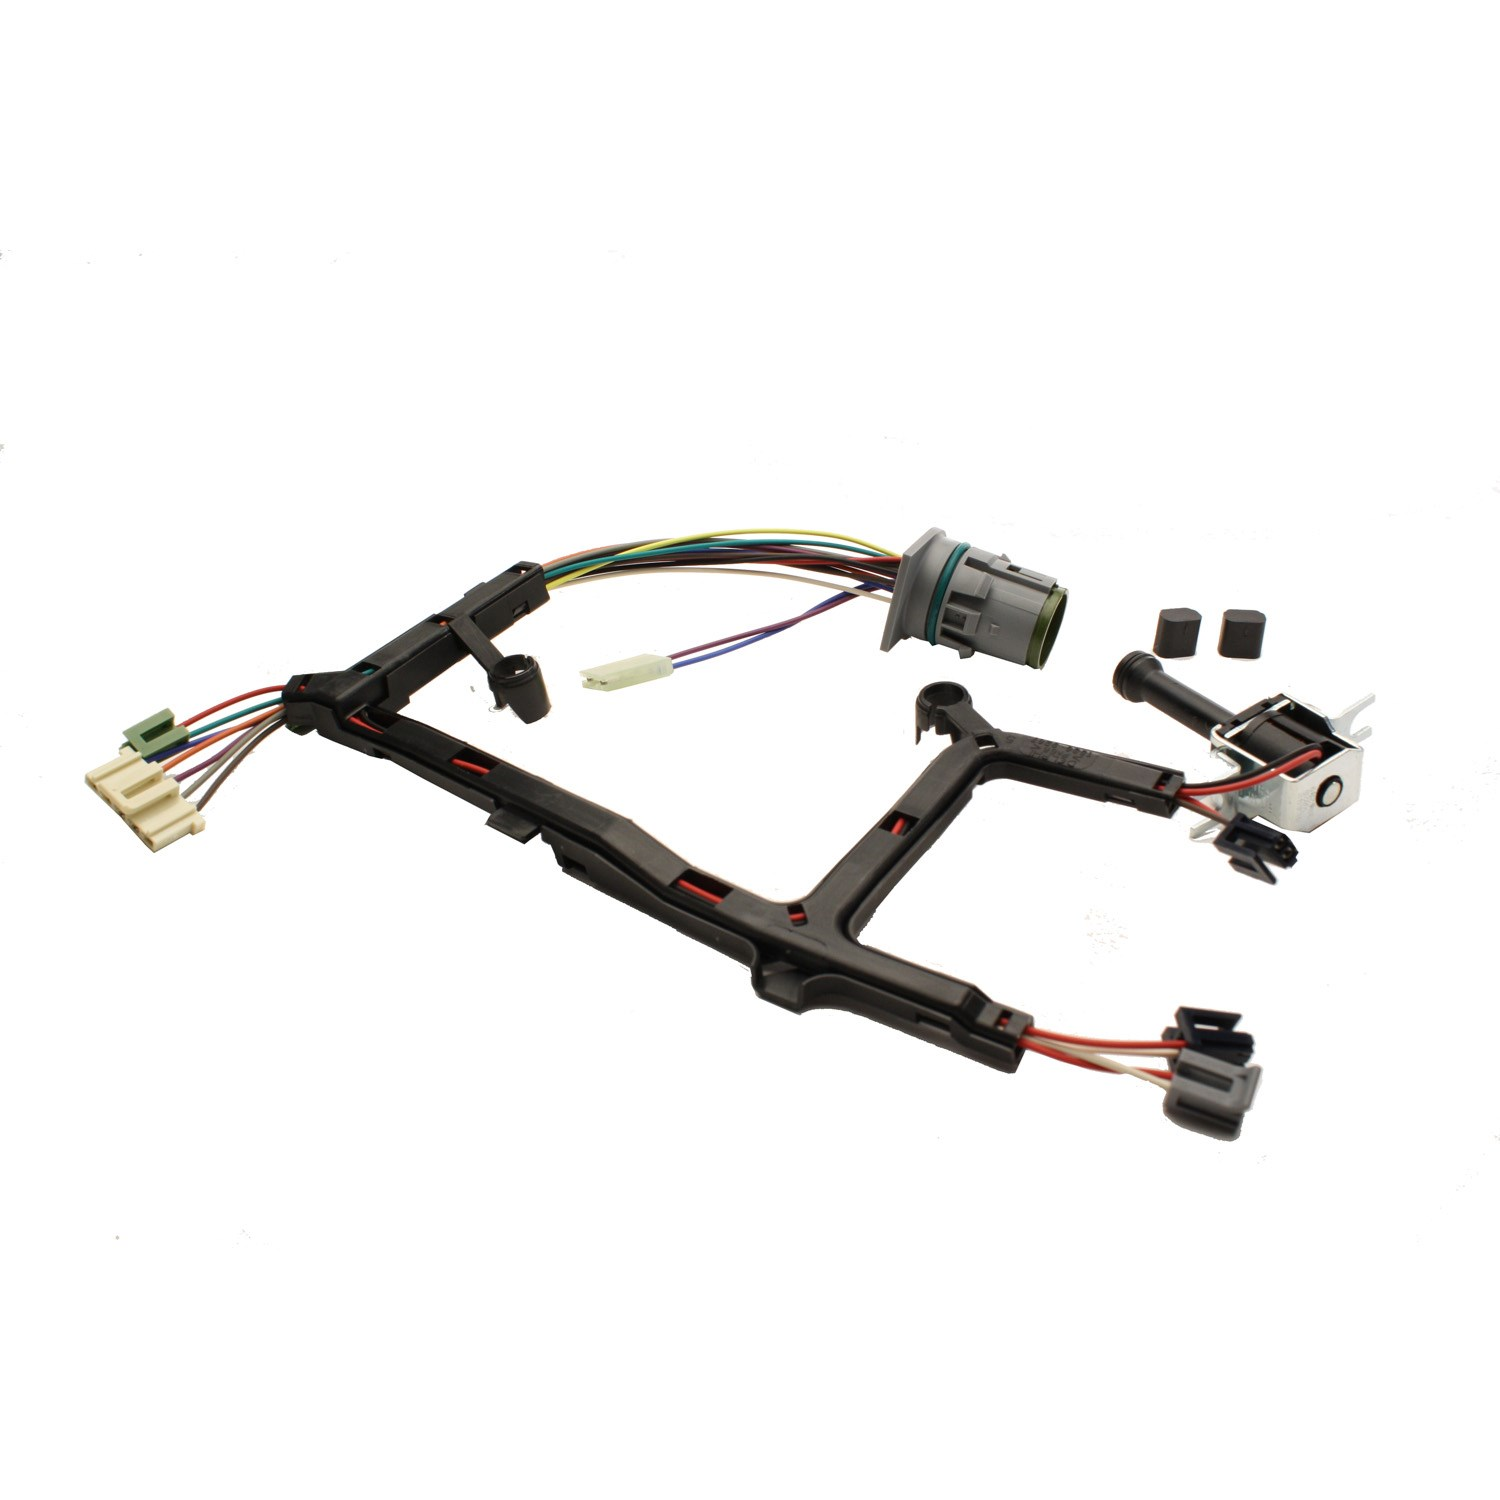 TCC solenoid wiring harness for the GM 4L60E, 1993-2002 ... on